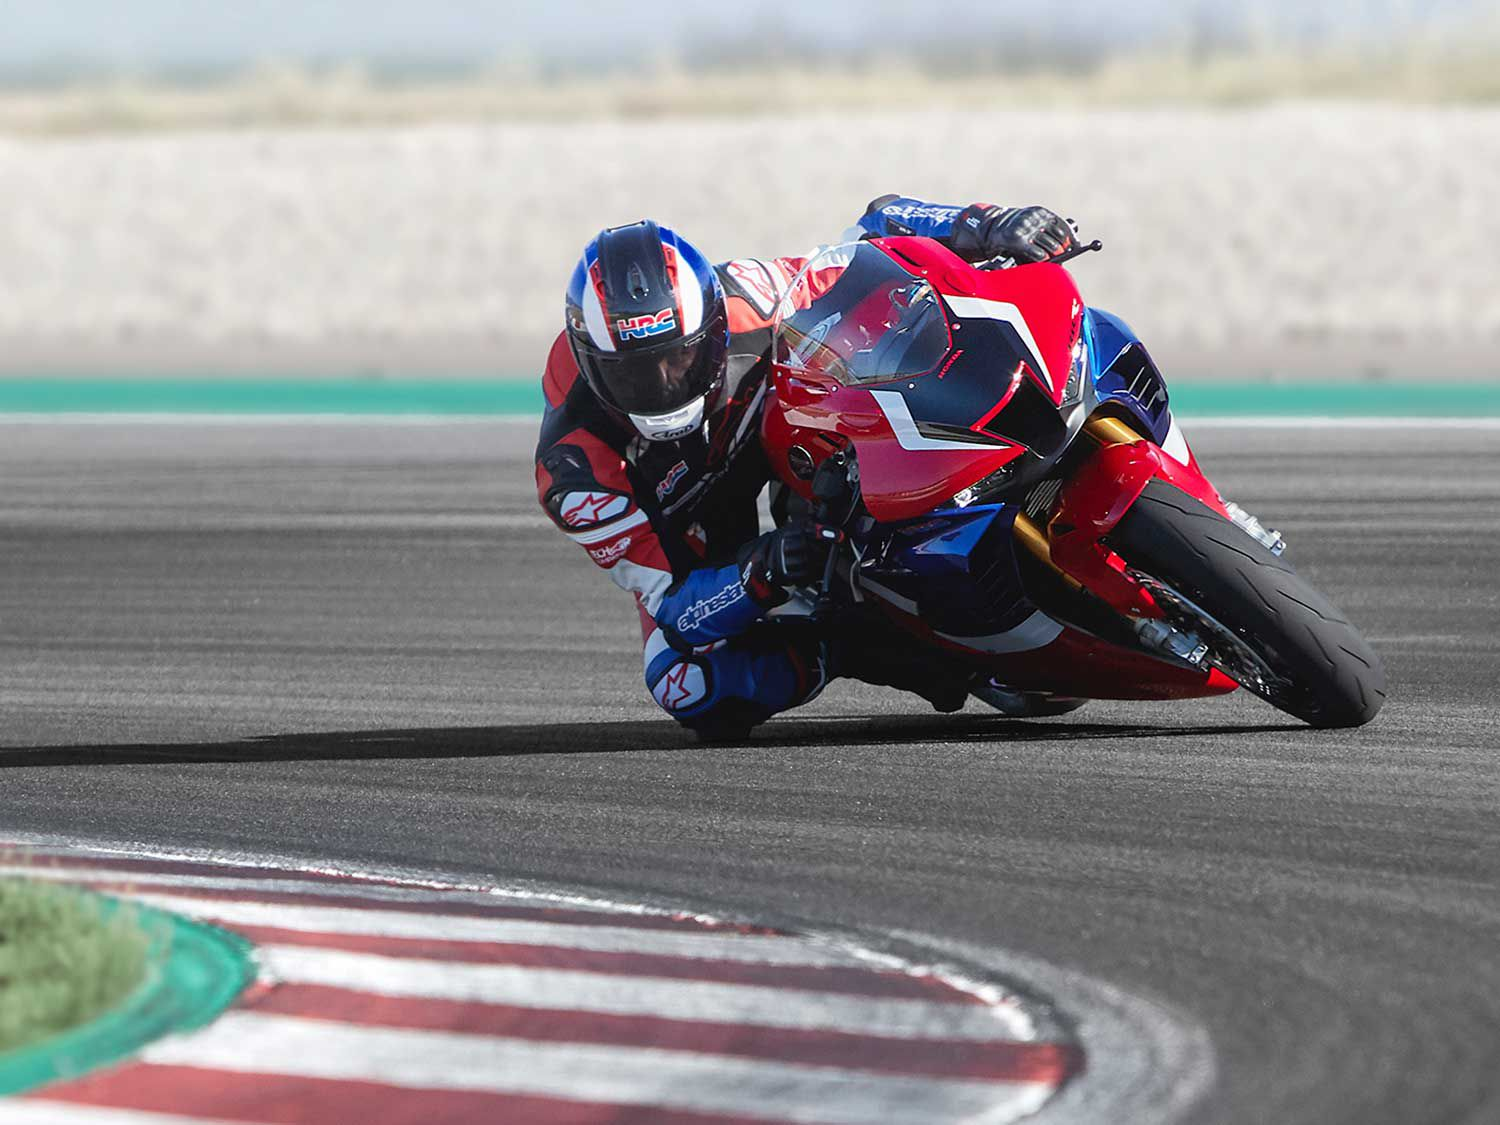 <h2>2021 Honda CBR1000RR-R Fireblade</h2> </br> Honda's superbike to keep up with the heavy horsepower hitters is the 2021 CBR1000RR-R Fireblade.